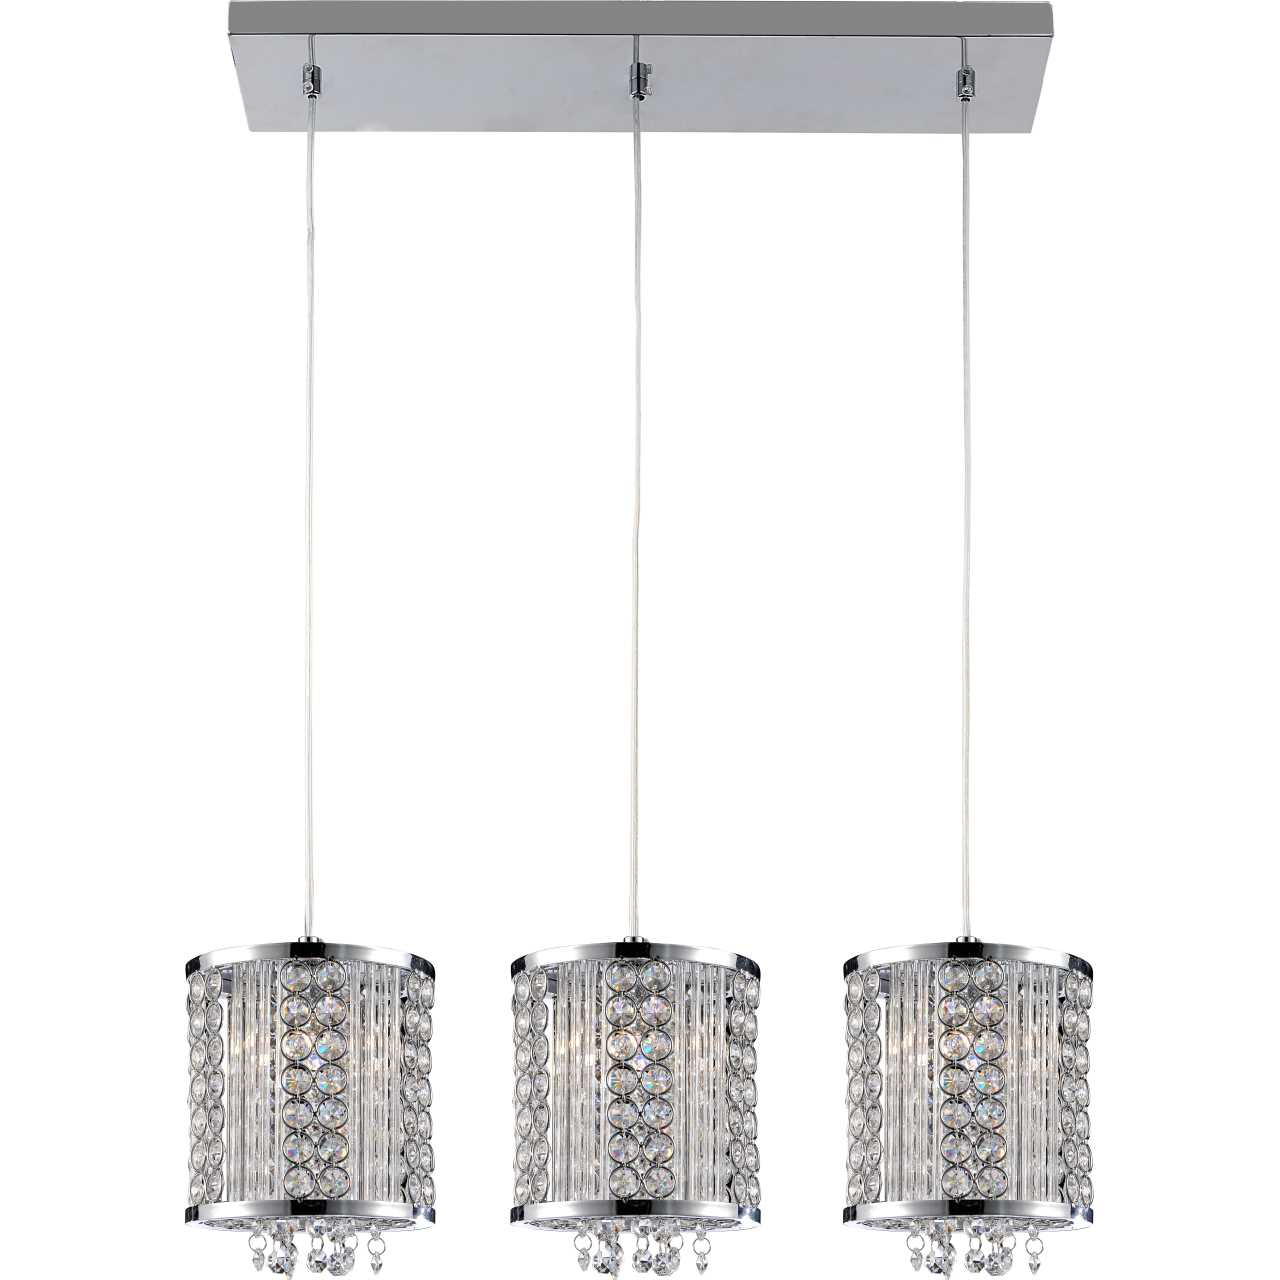 Brizzo lighting stores 28 cristallo modern crystal linear mini picture of 28 cristallo modern crystal linear mini pendants on rectangular platform polished chrome aloadofball Gallery